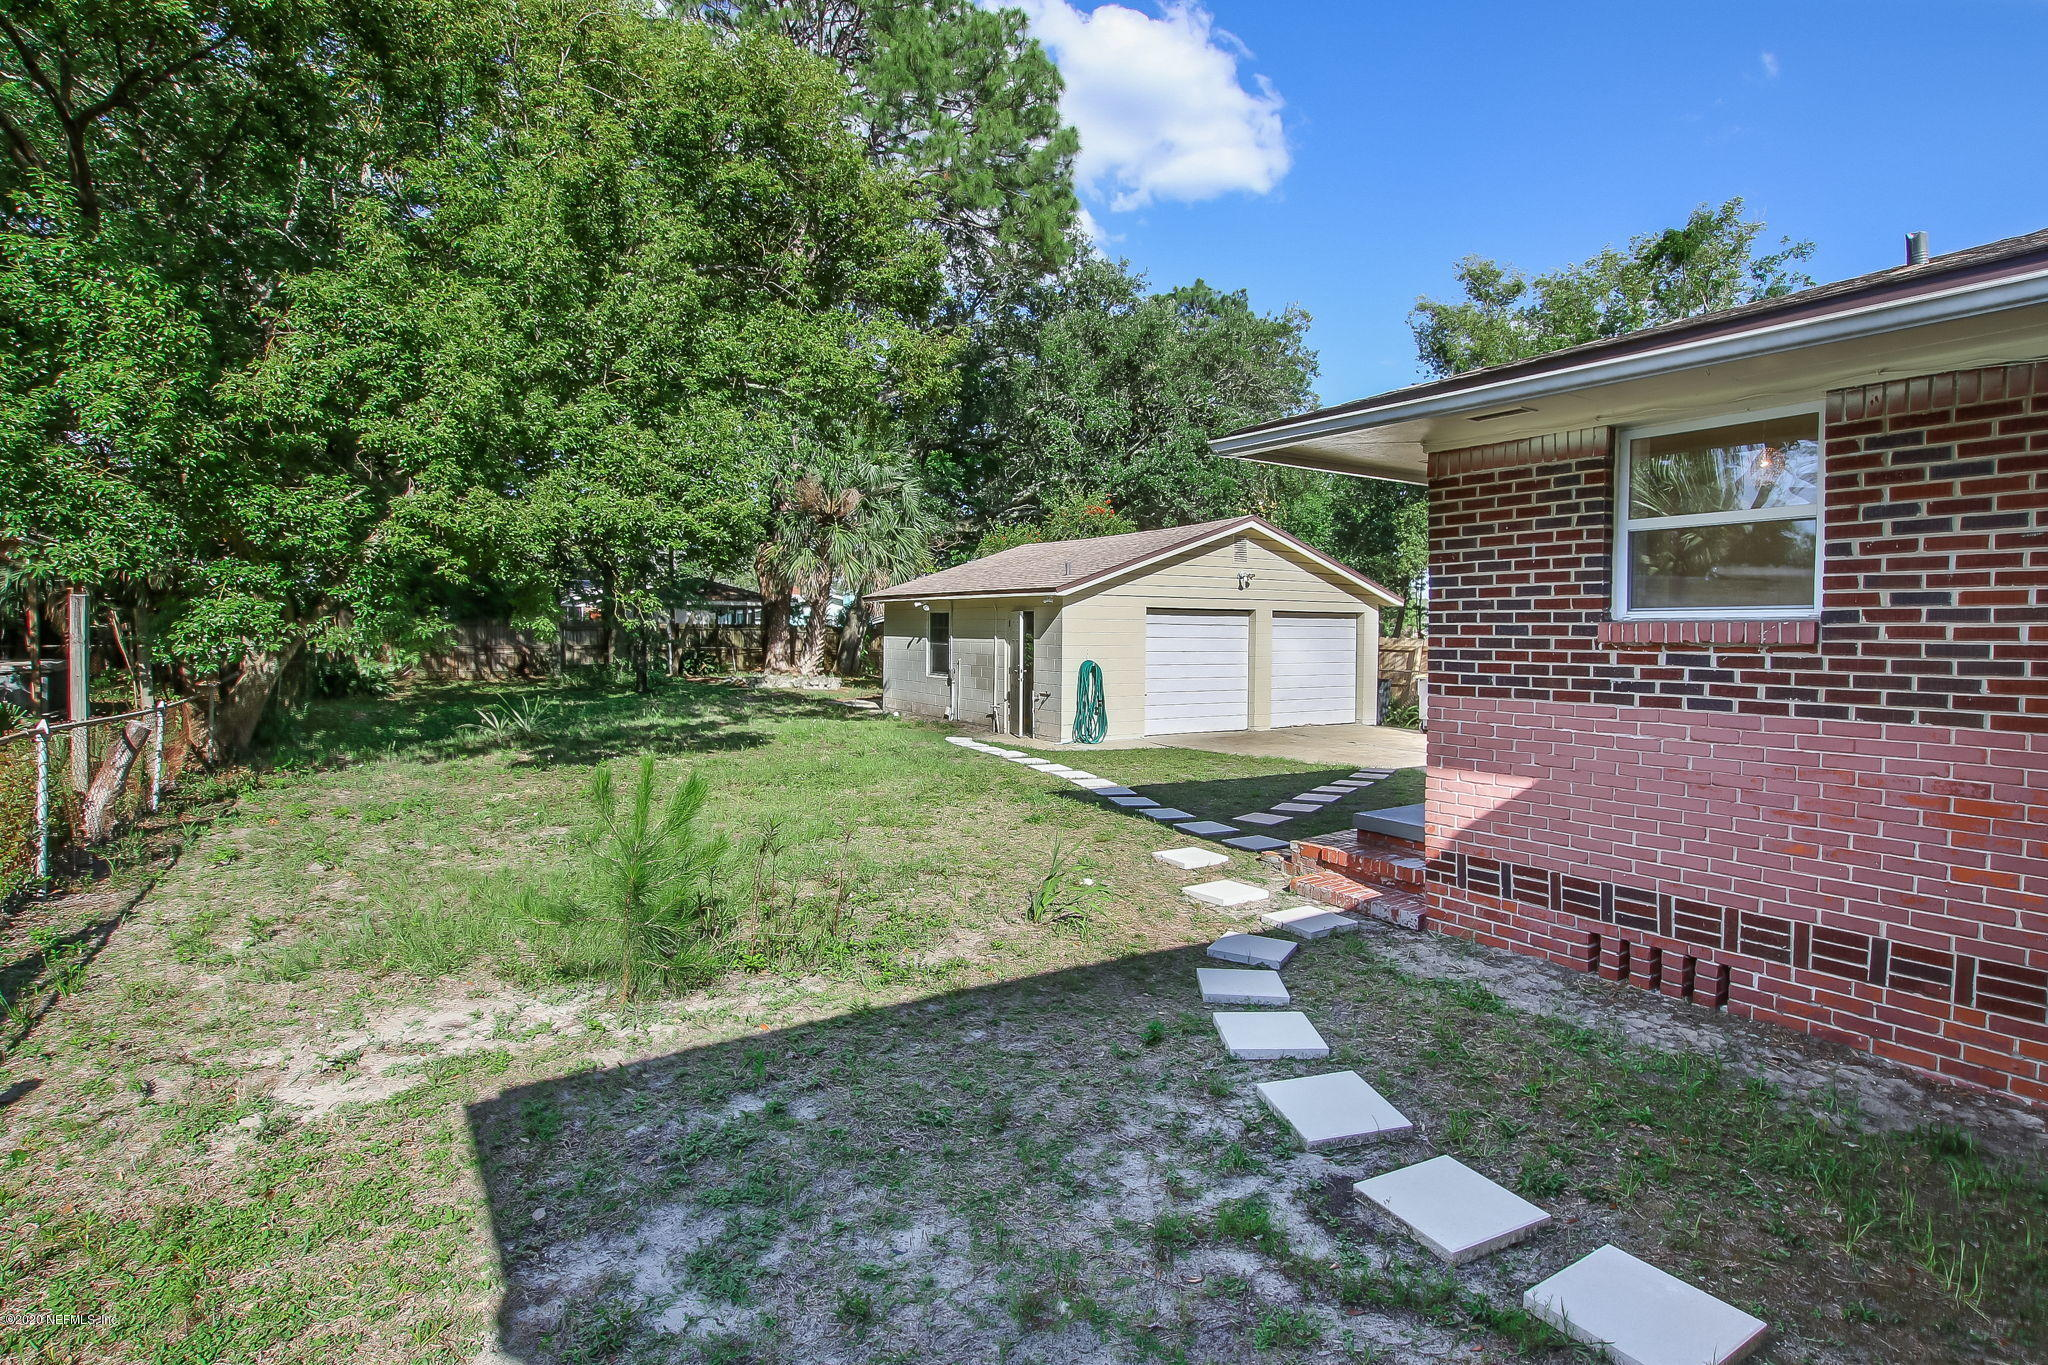 725 SOUTH SHORES, JACKSONVILLE, FLORIDA 32207, 4 Bedrooms Bedrooms, ,2 BathroomsBathrooms,Residential,For sale,SOUTH SHORES,1051063